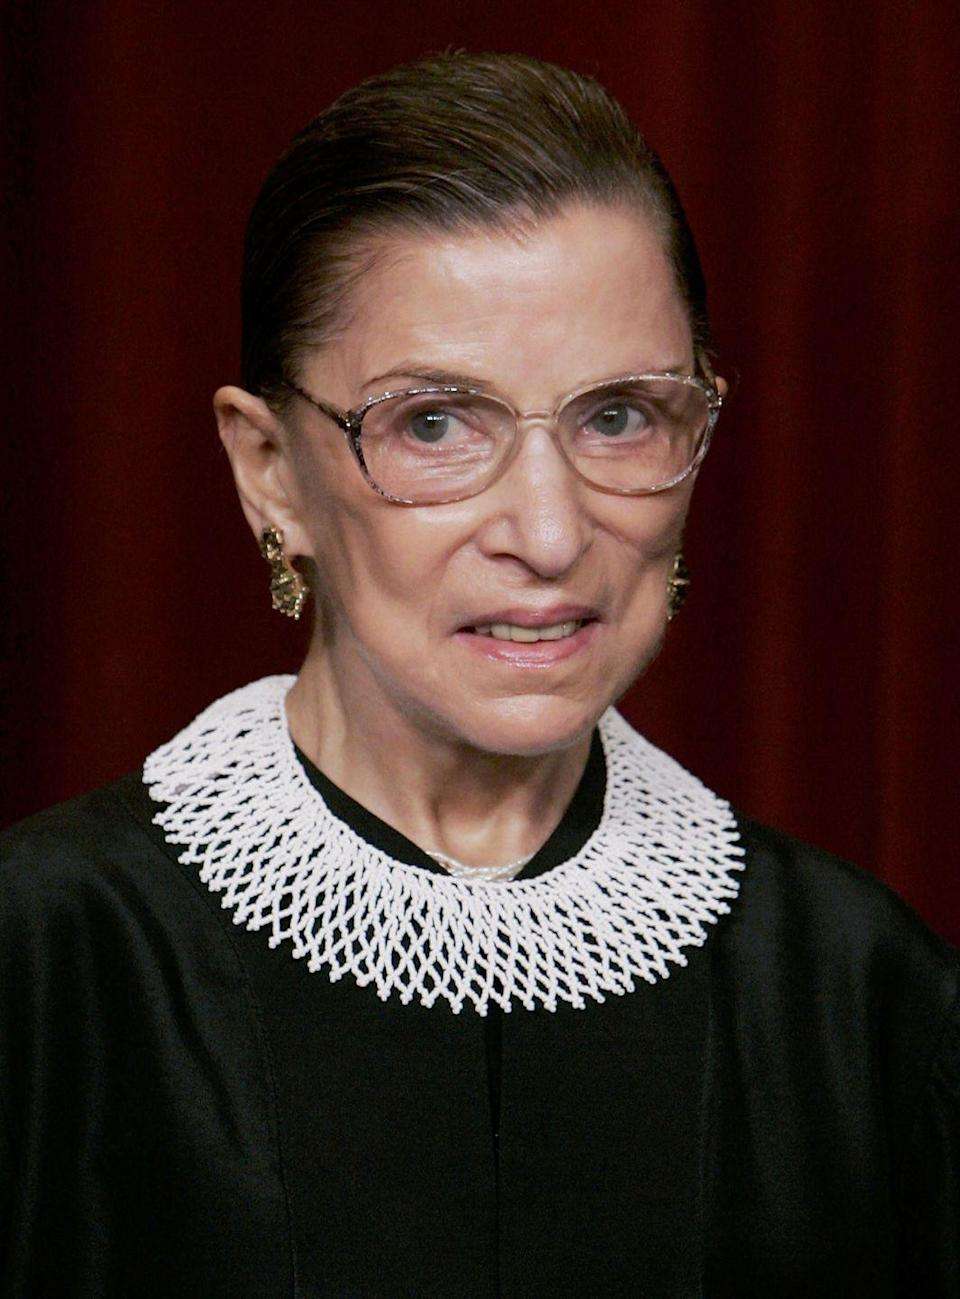 <p>The woman was a legal legend, but her ability to accessorize should also be recognized. Layer an elaborate collar (a paper one is fine if you are in a pinch) over a black dress along with Ginsberg's signature specs and a pair of classic earrings.</p>